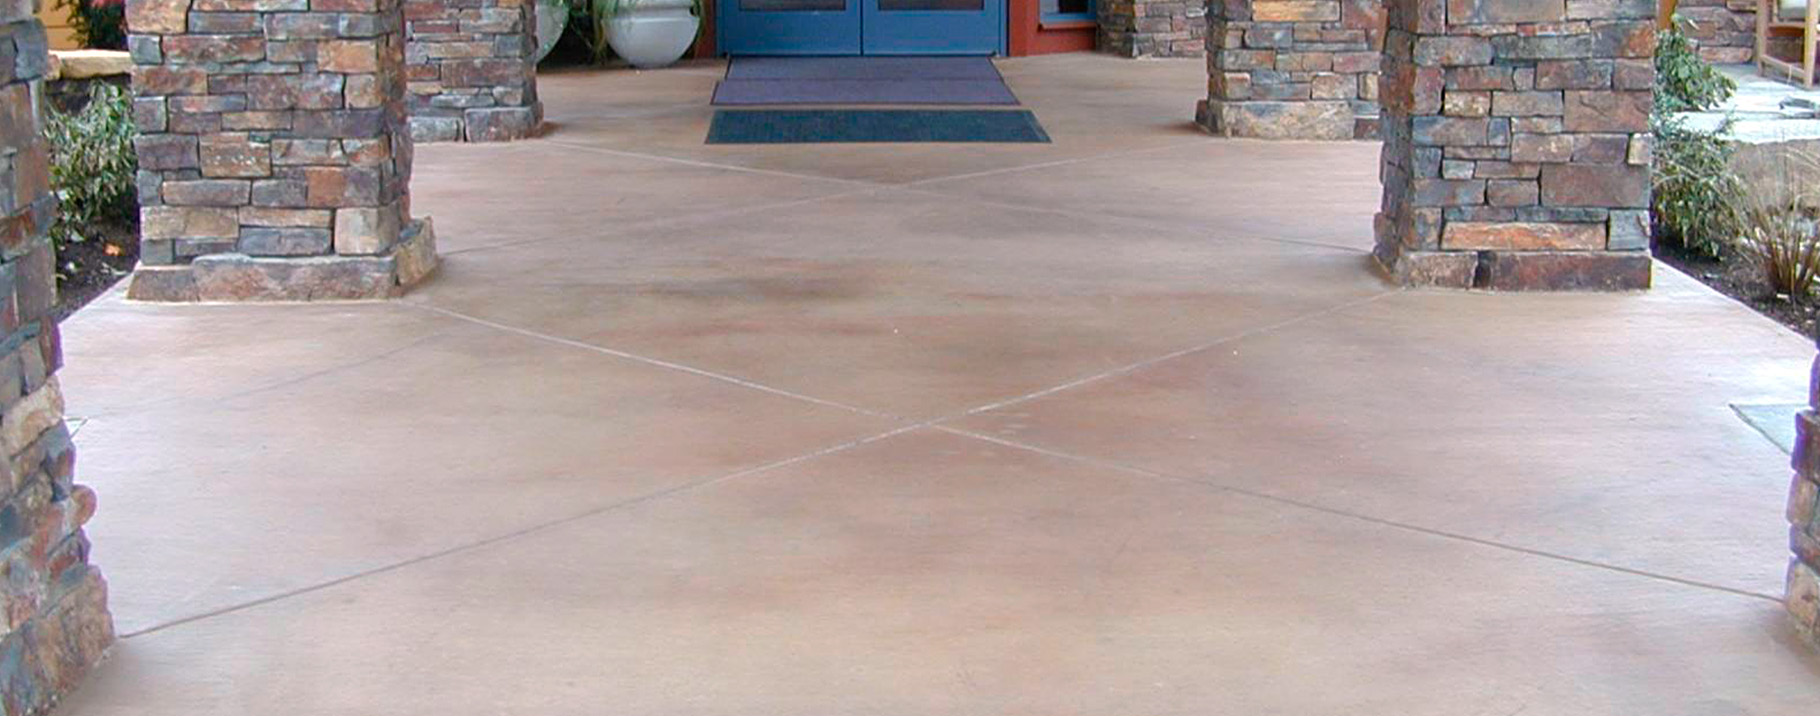 -Smooth concrete floor